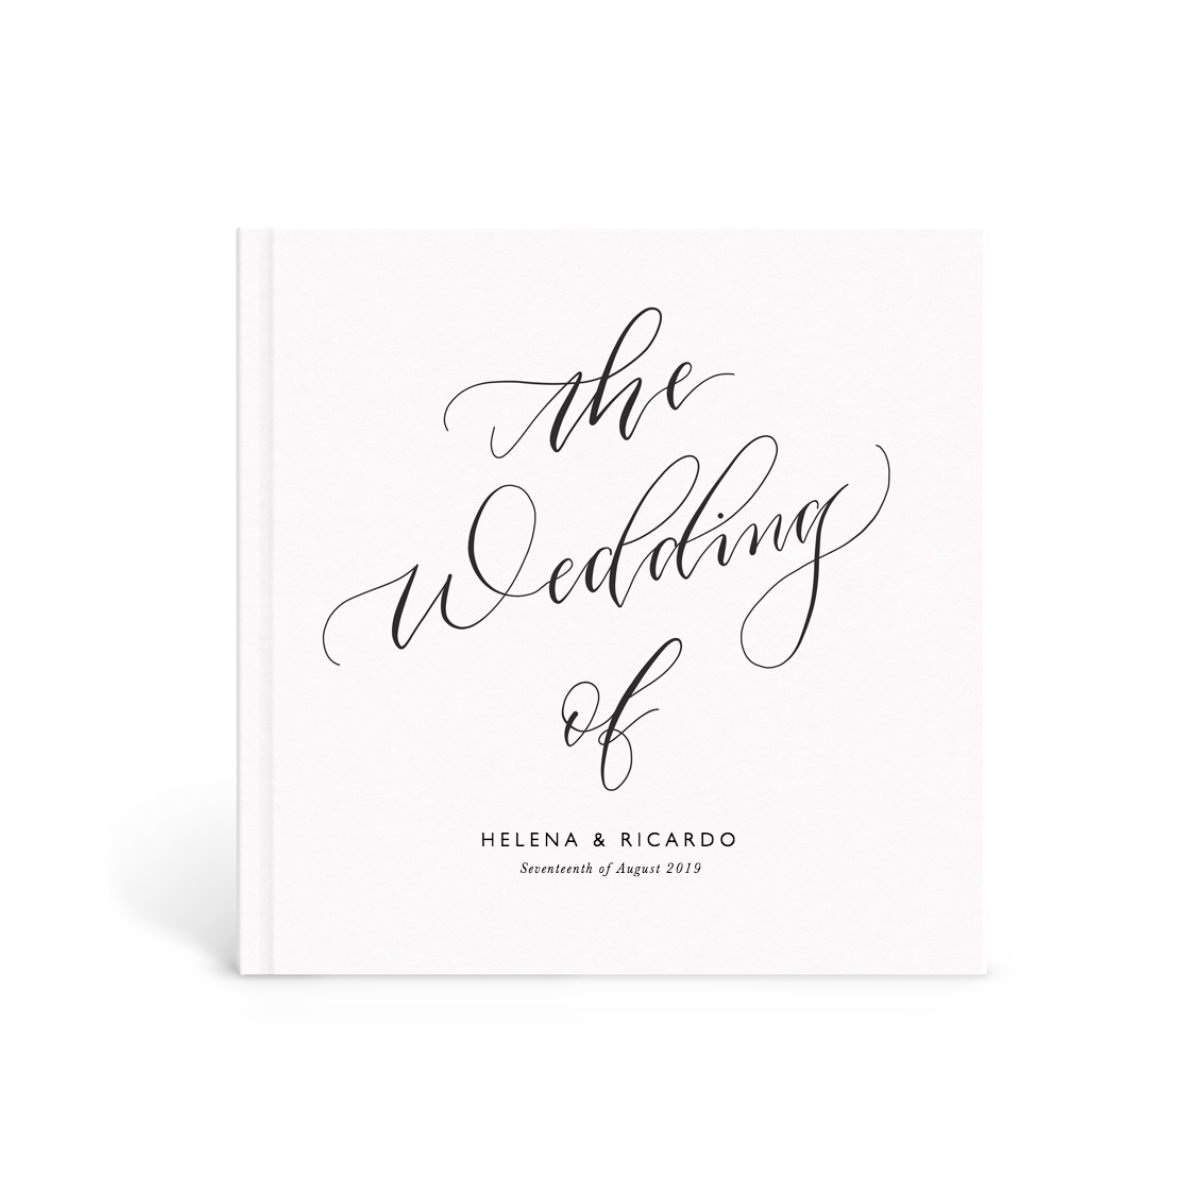 Https%3a%2f%2fwww.papier.com%2fproduct image%2f45552%2f23%2fthe wedding of 11282 front 1535545185.png?ixlib=rb 1.1